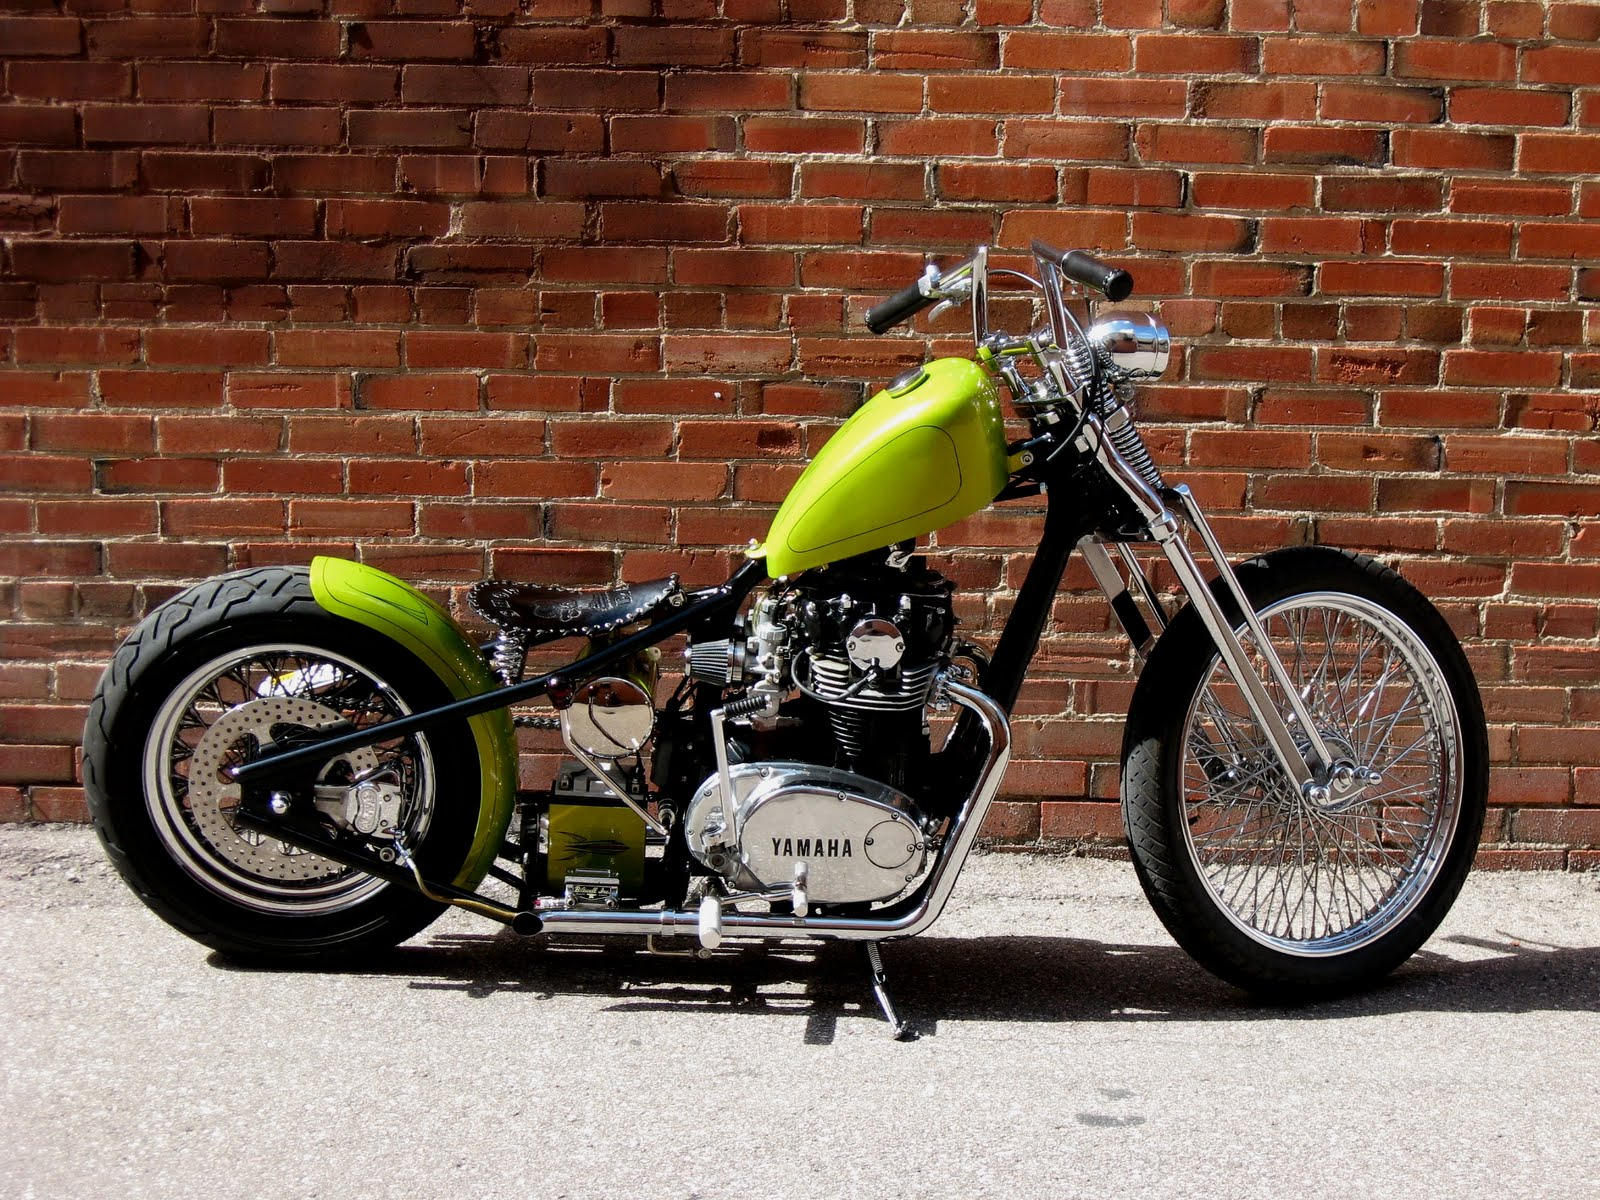 yamaha xs650 lime green bobber motorcycle. Black Bedroom Furniture Sets. Home Design Ideas